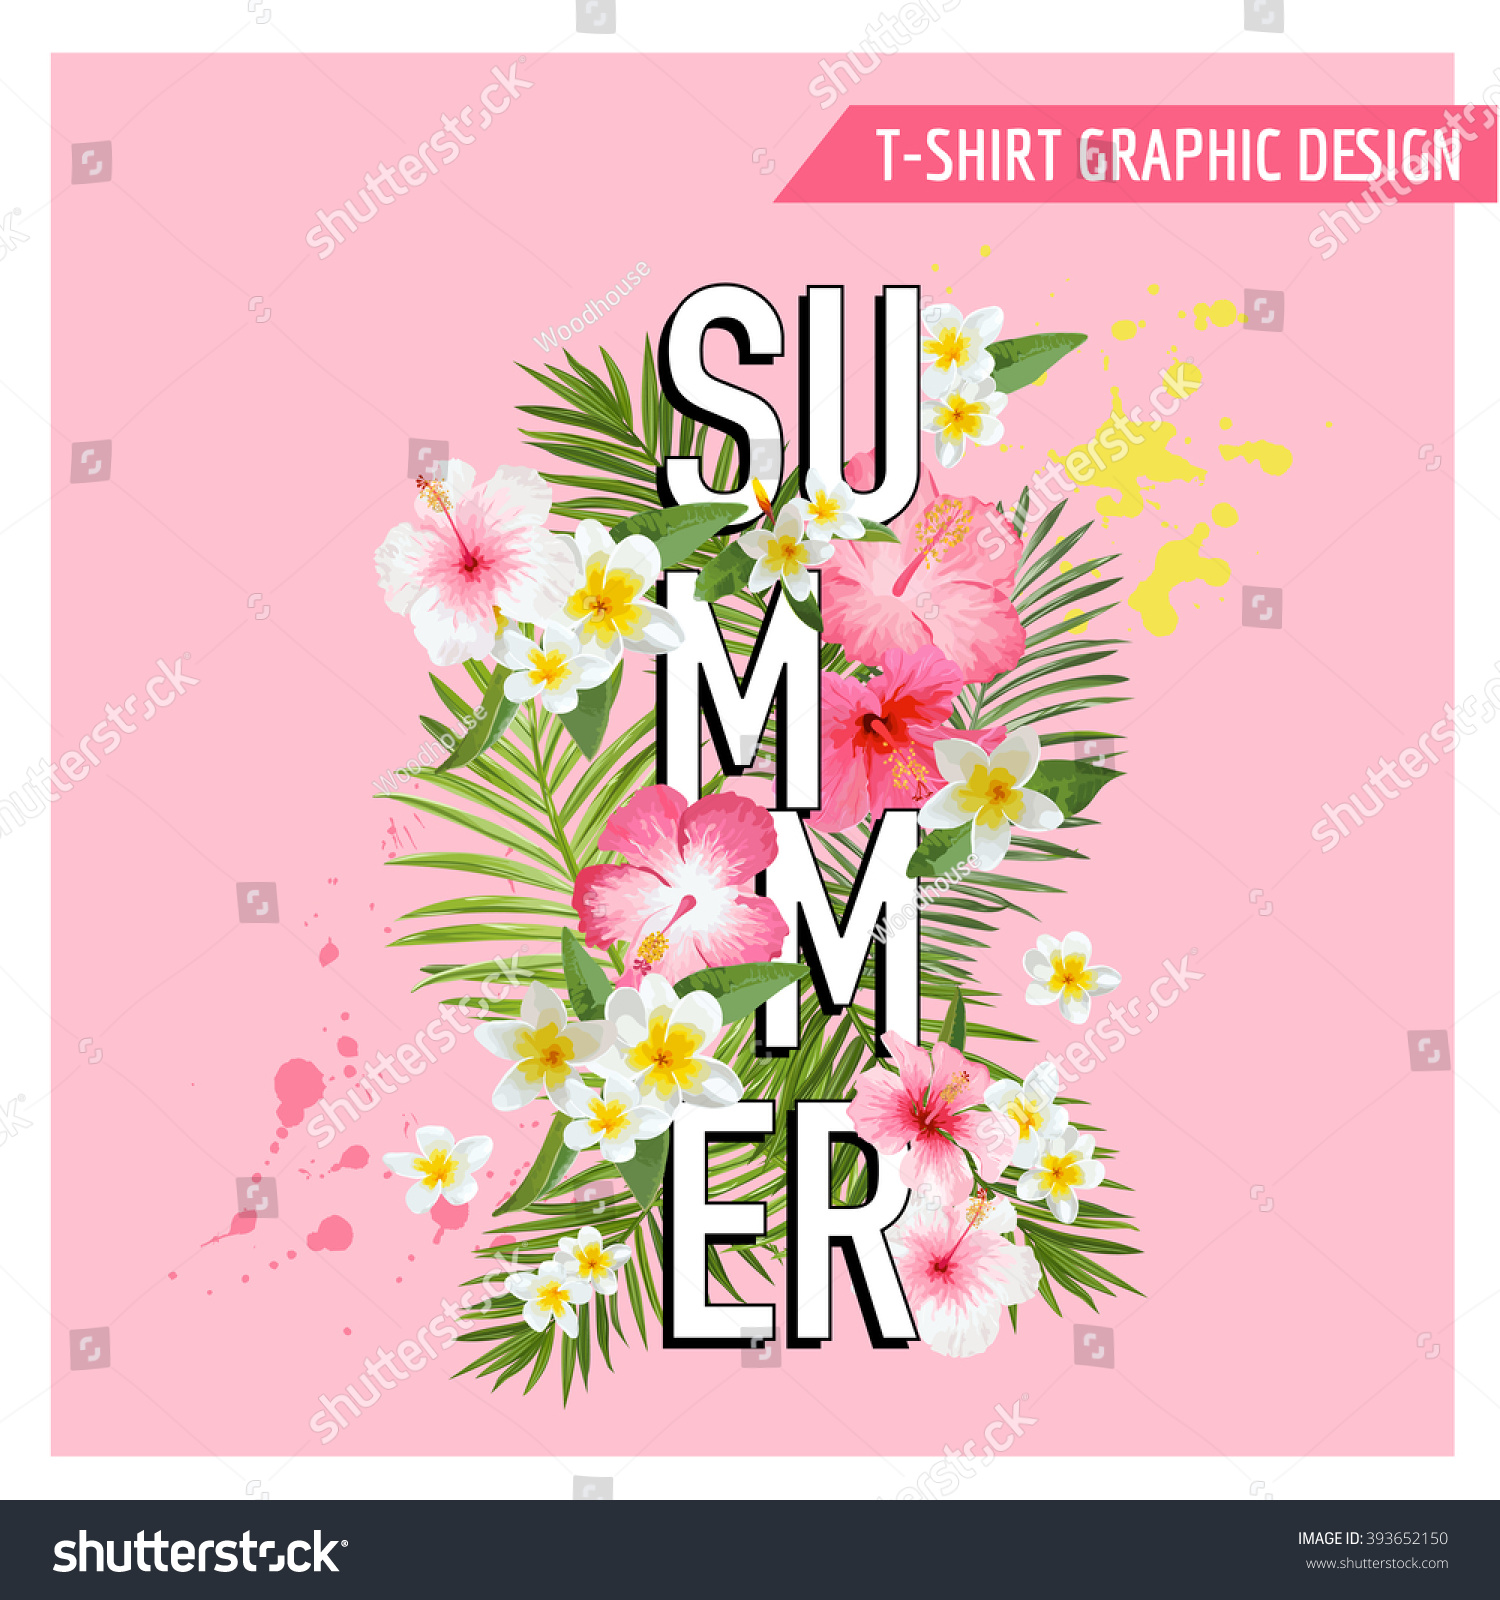 Tropical Flowers and Leaves Background Summer Design Vector T-shirt Fashion Graphic